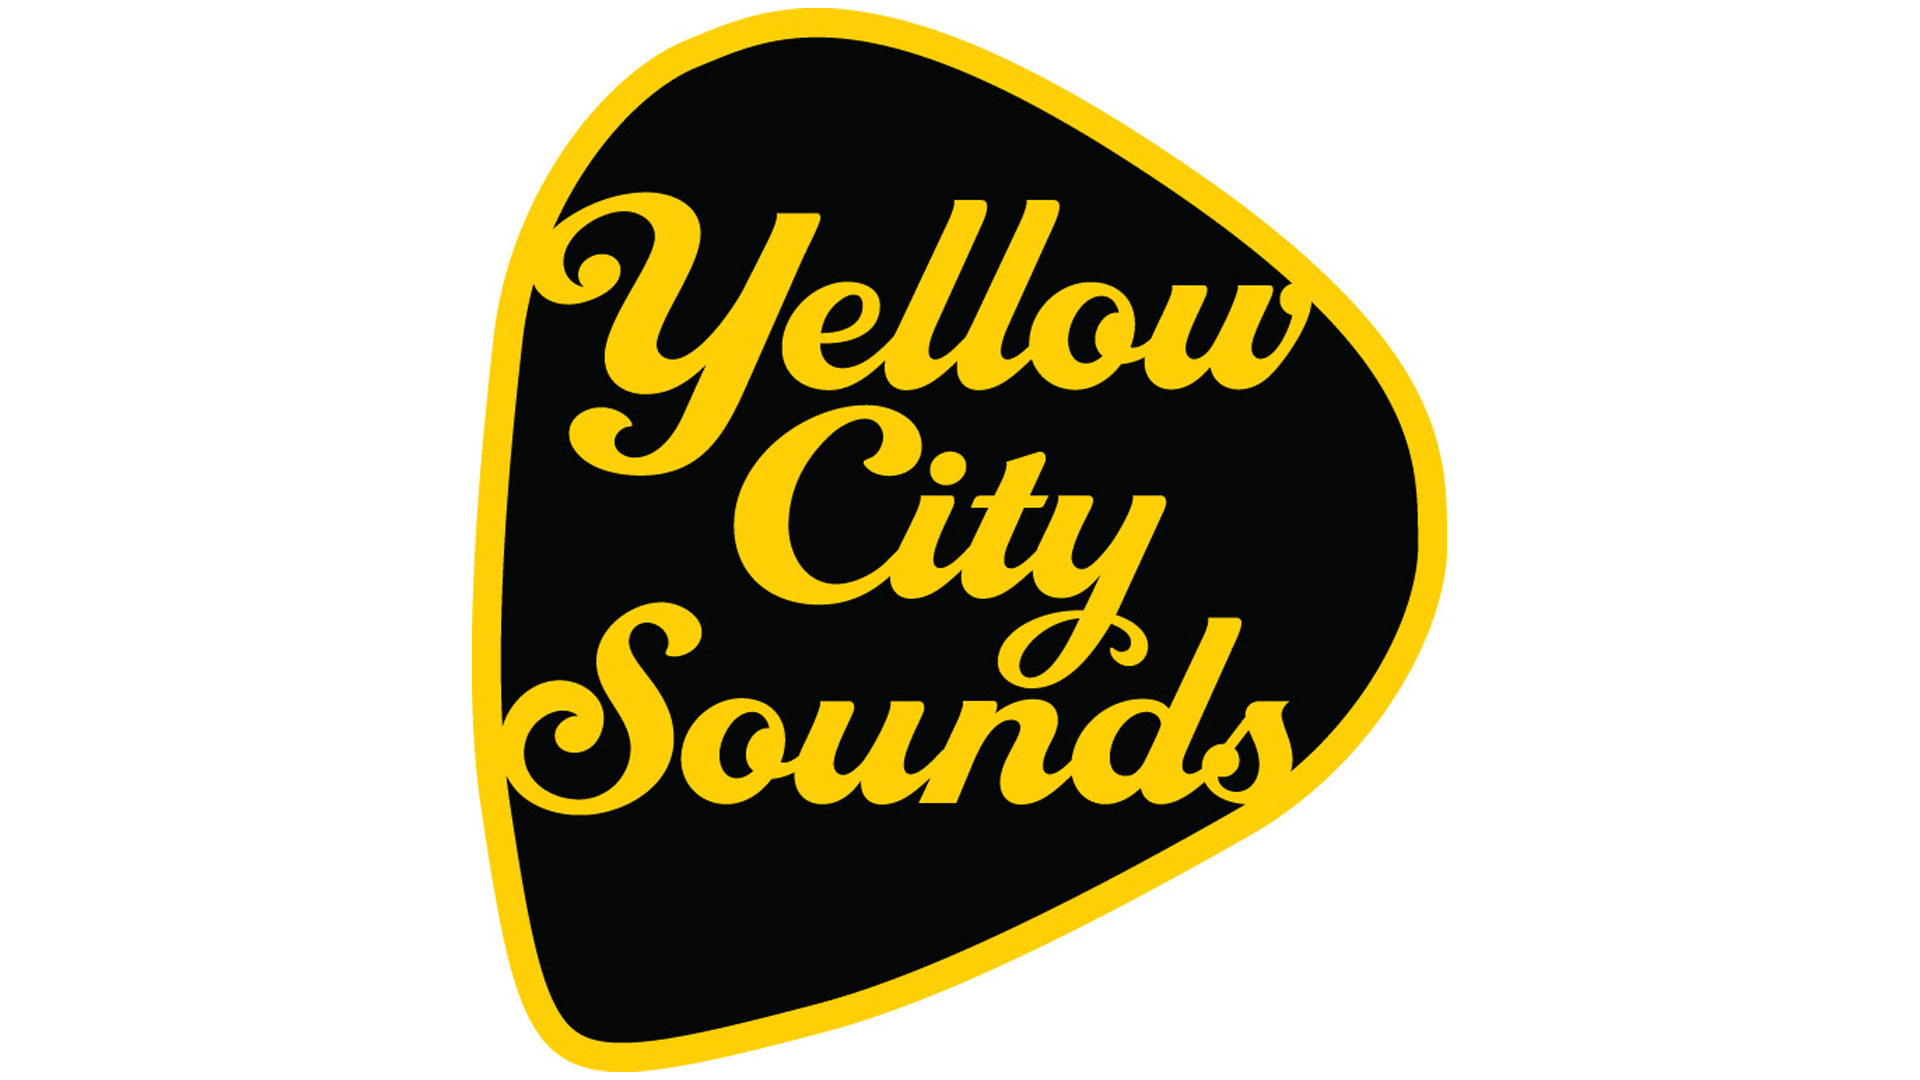 Yellow City Sounds series will include country, blues favorites in 2019